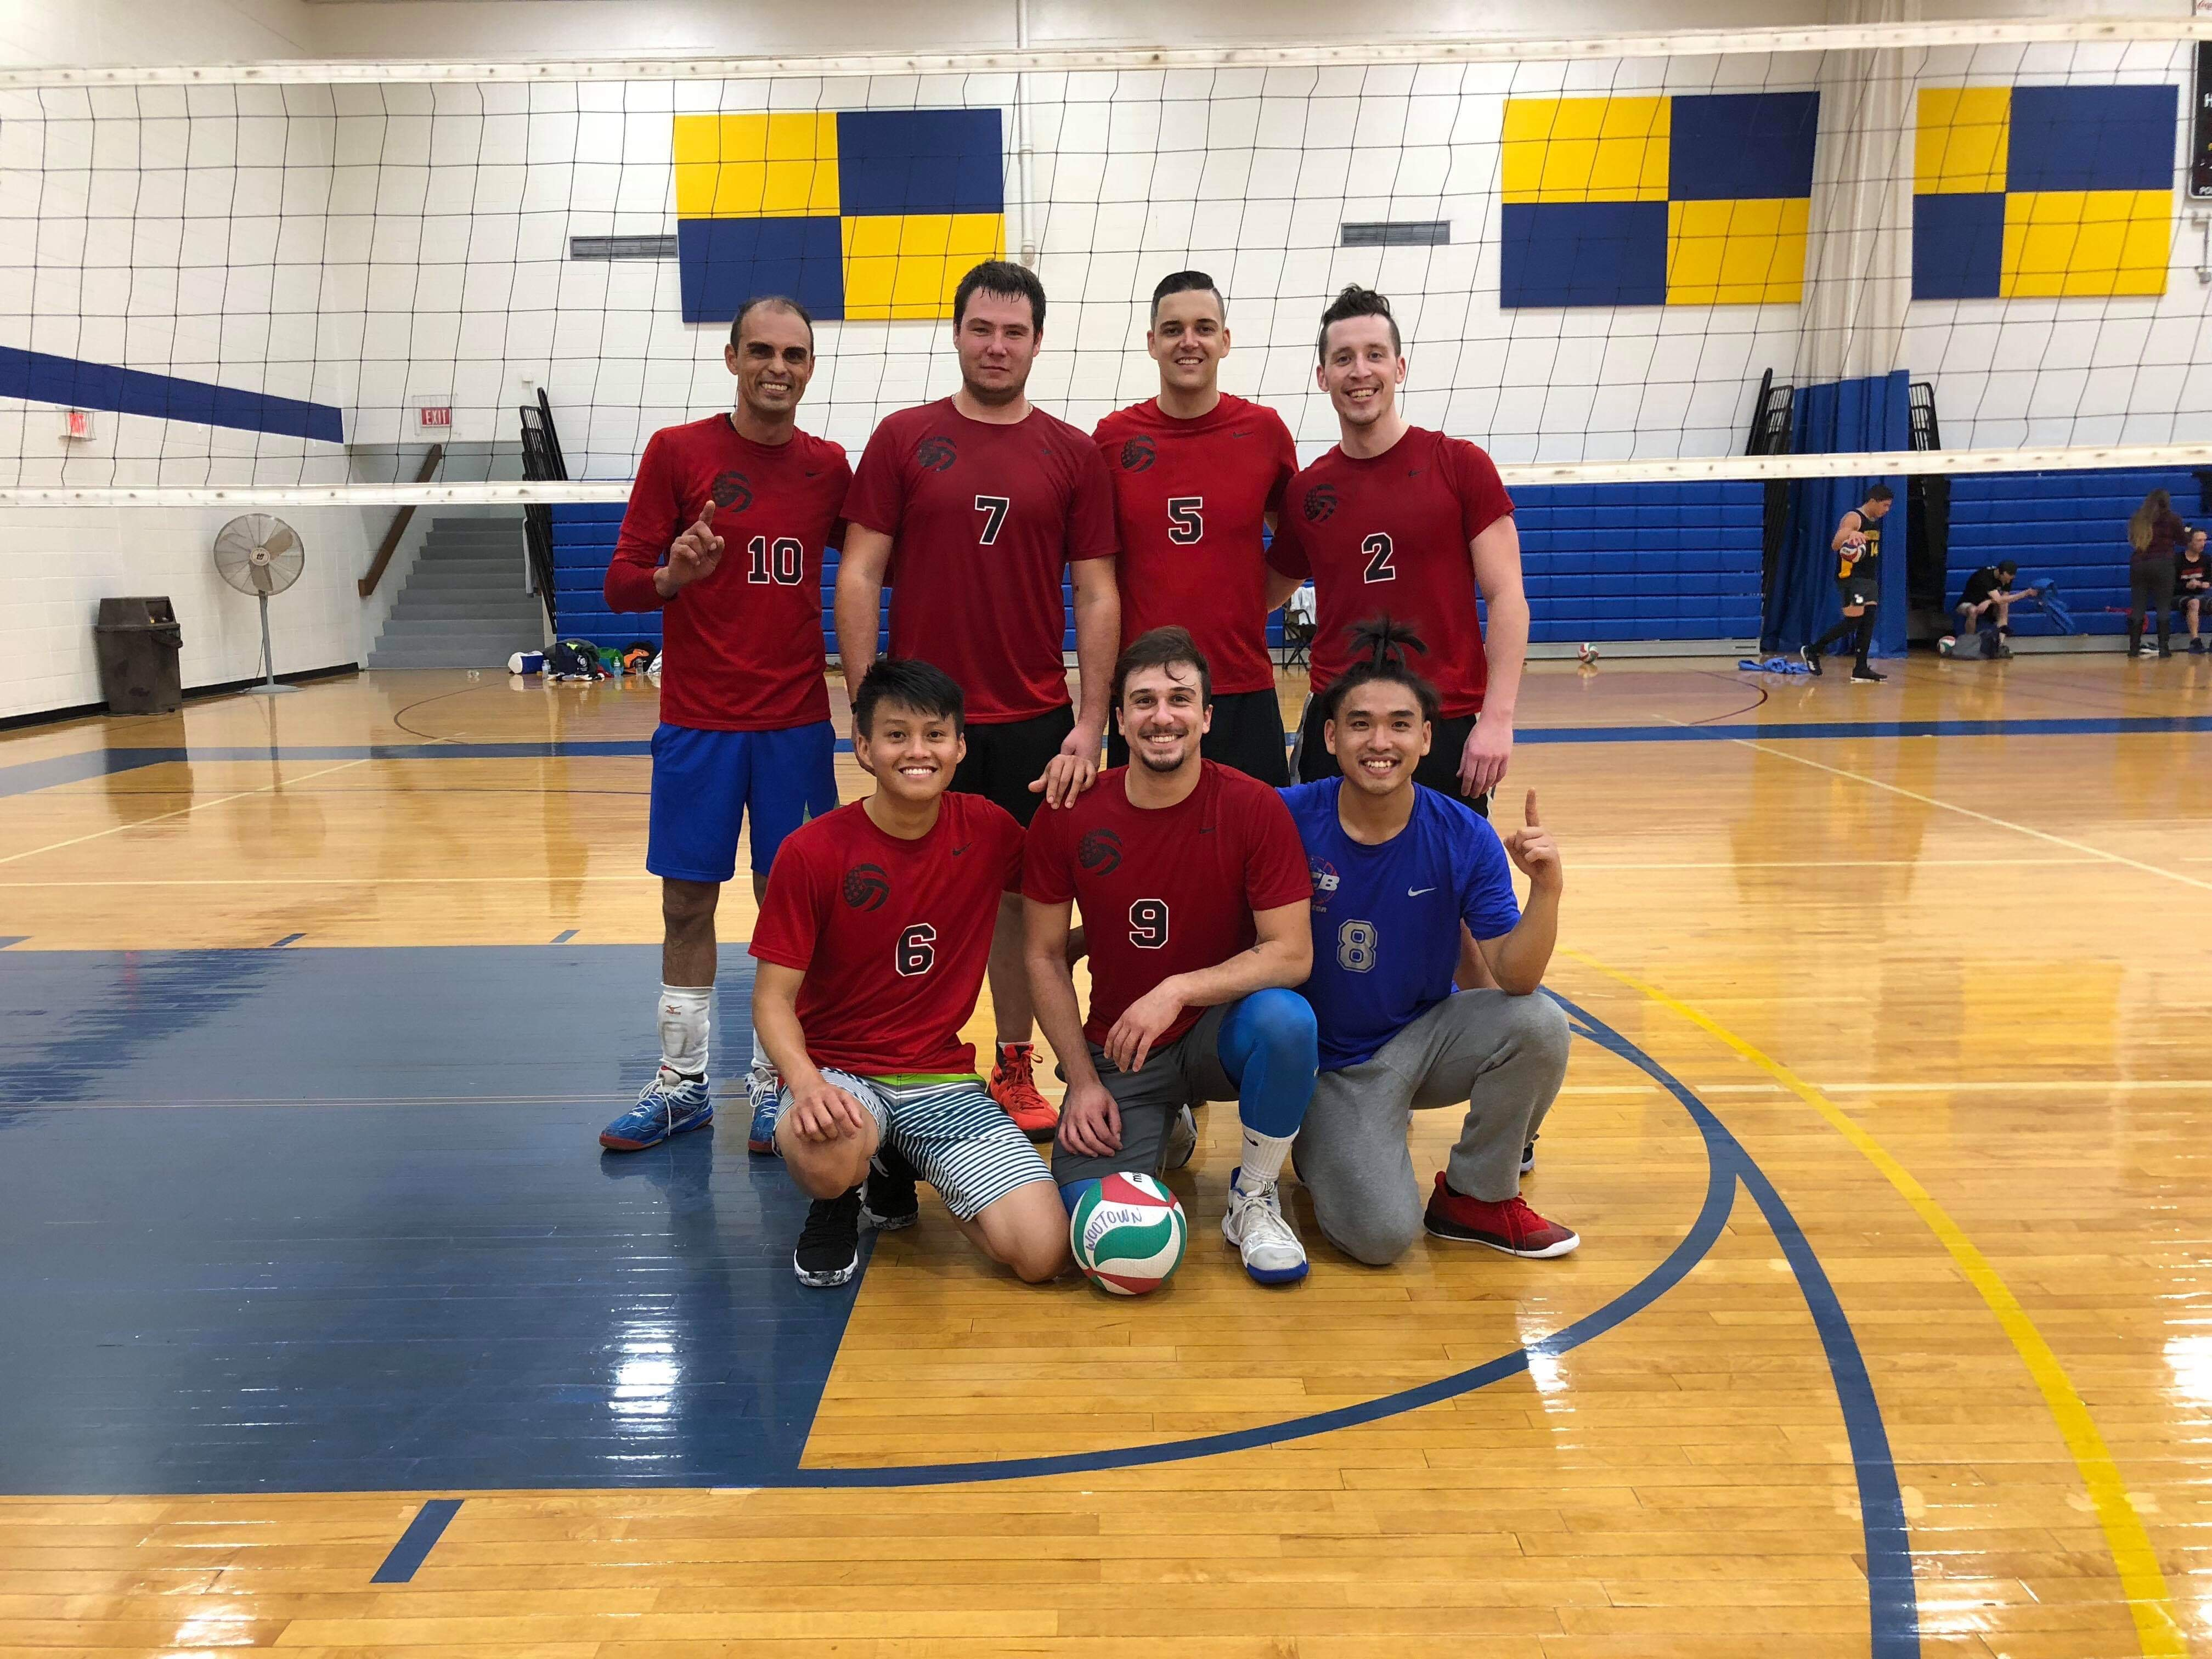 10/14/2018 MB- Champions - Brazilians Spike It Hot